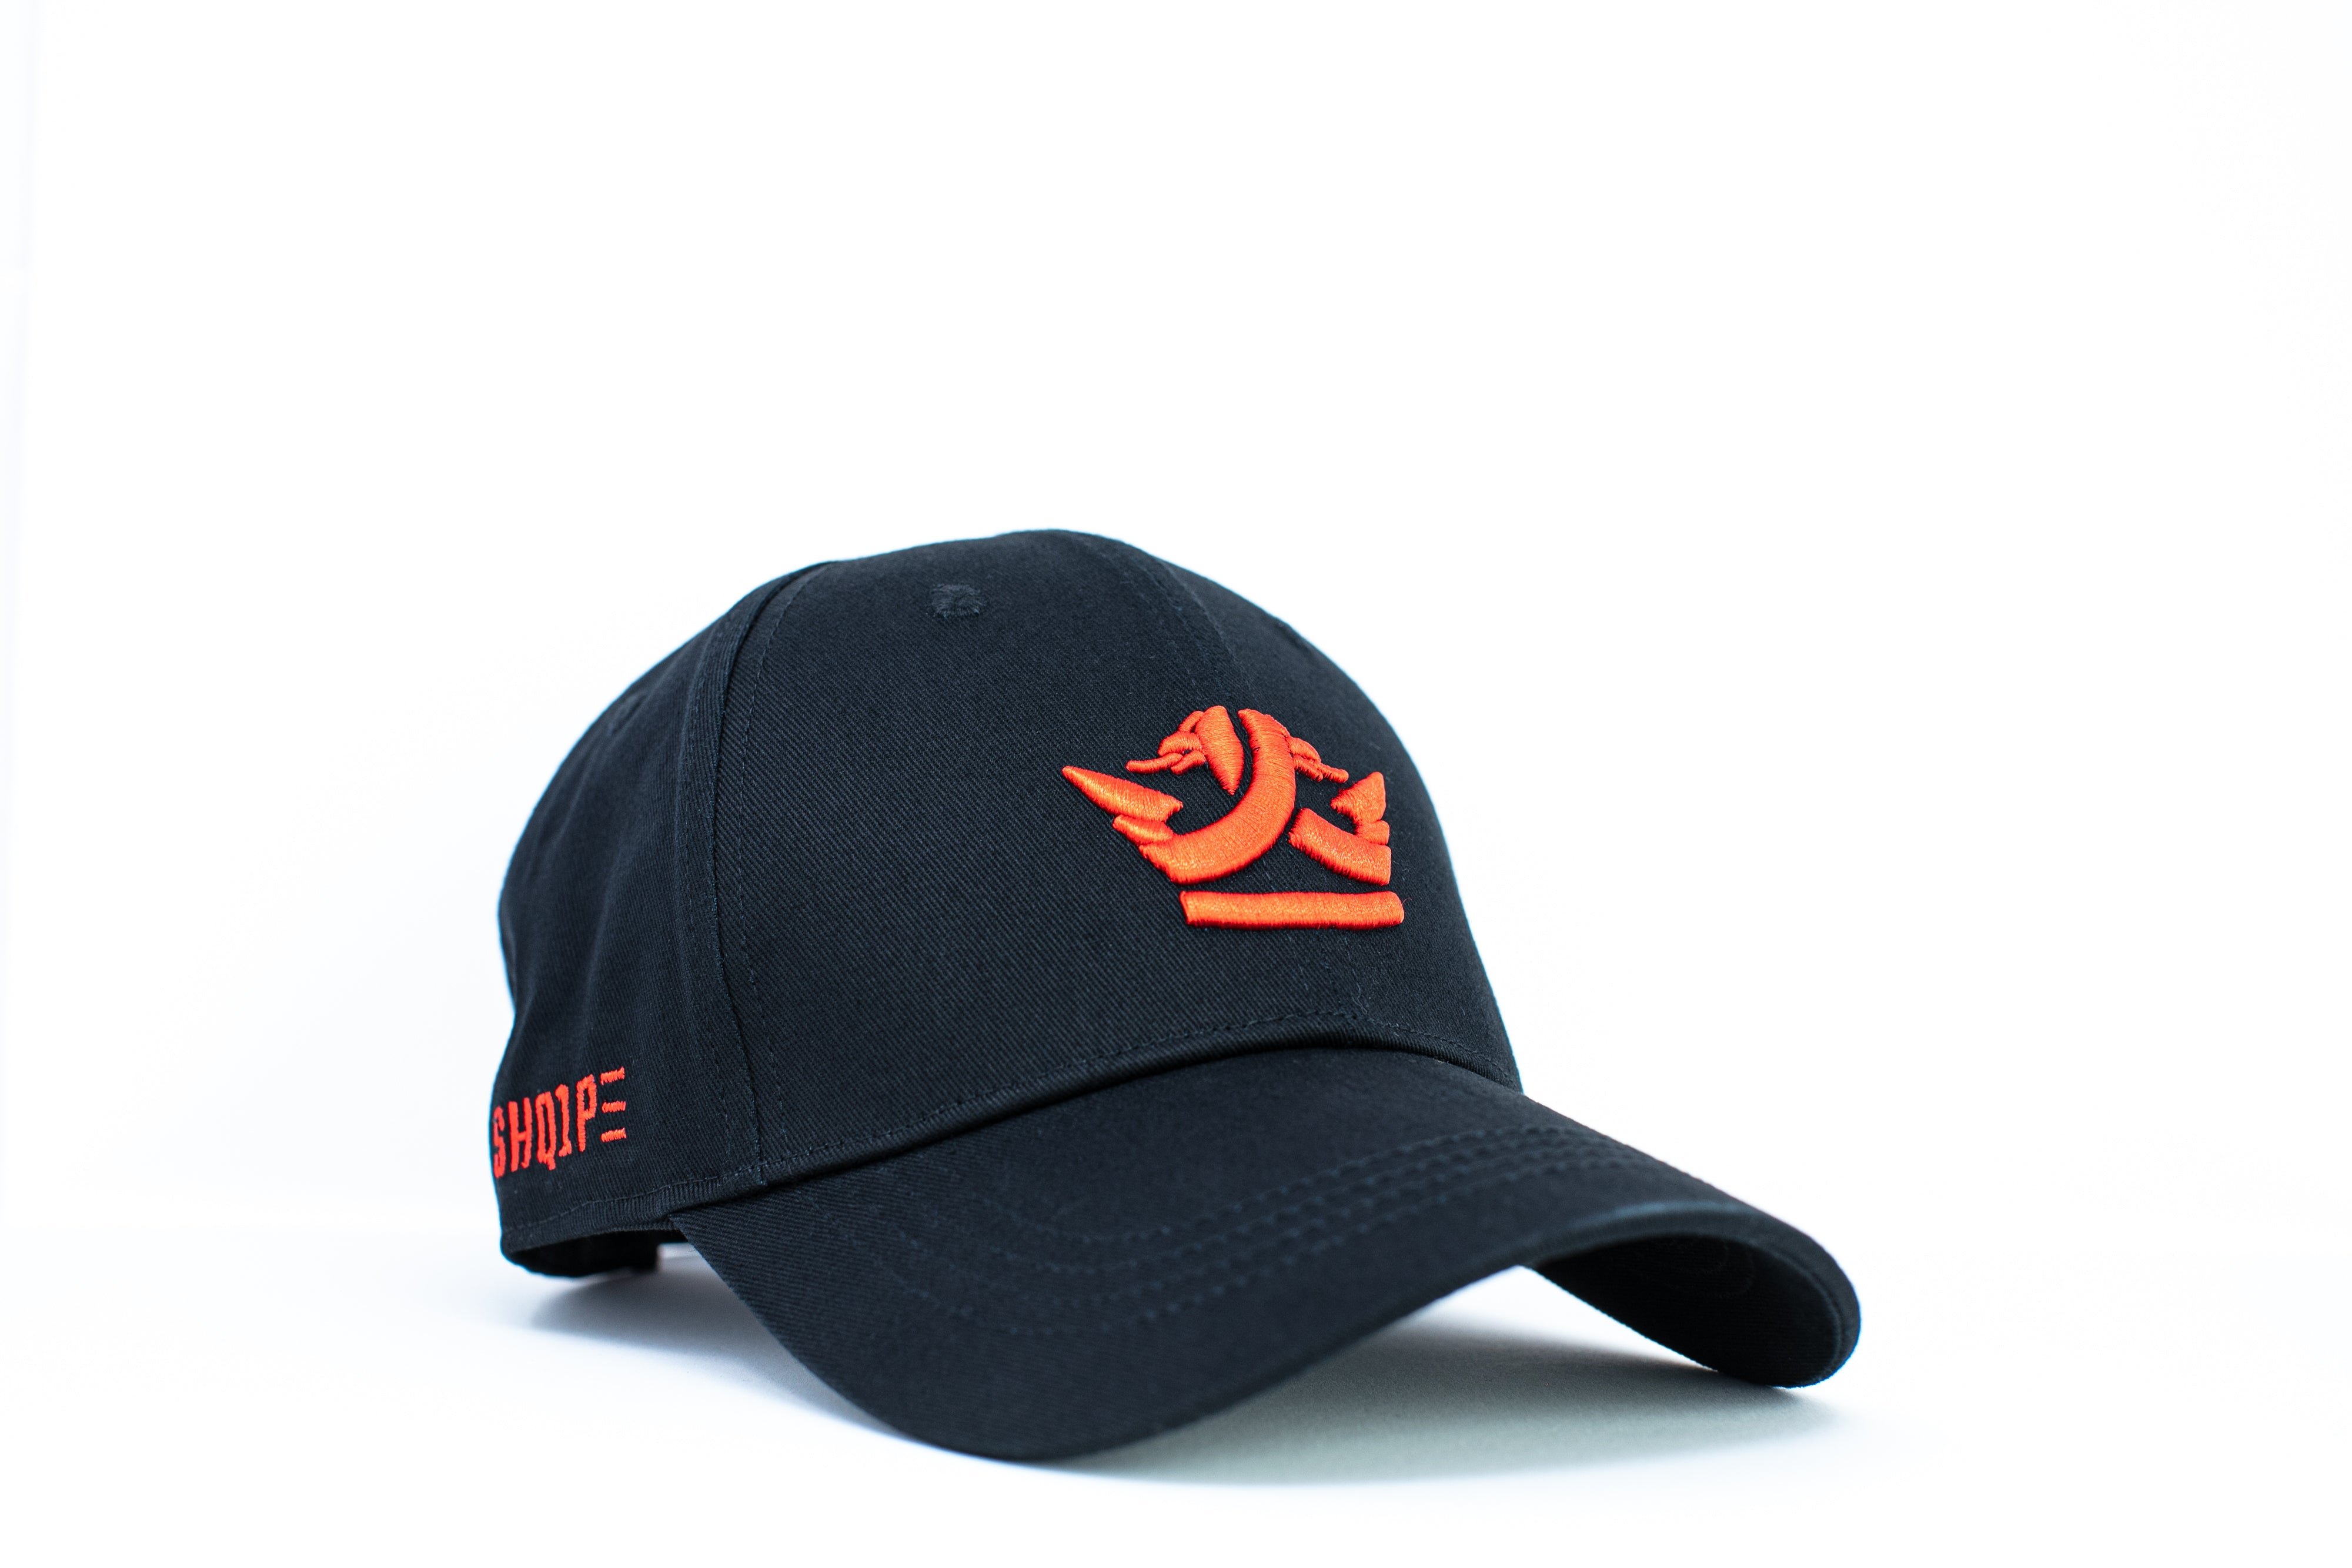 1st Edition Shq1pe Baseball Cap Black/Red